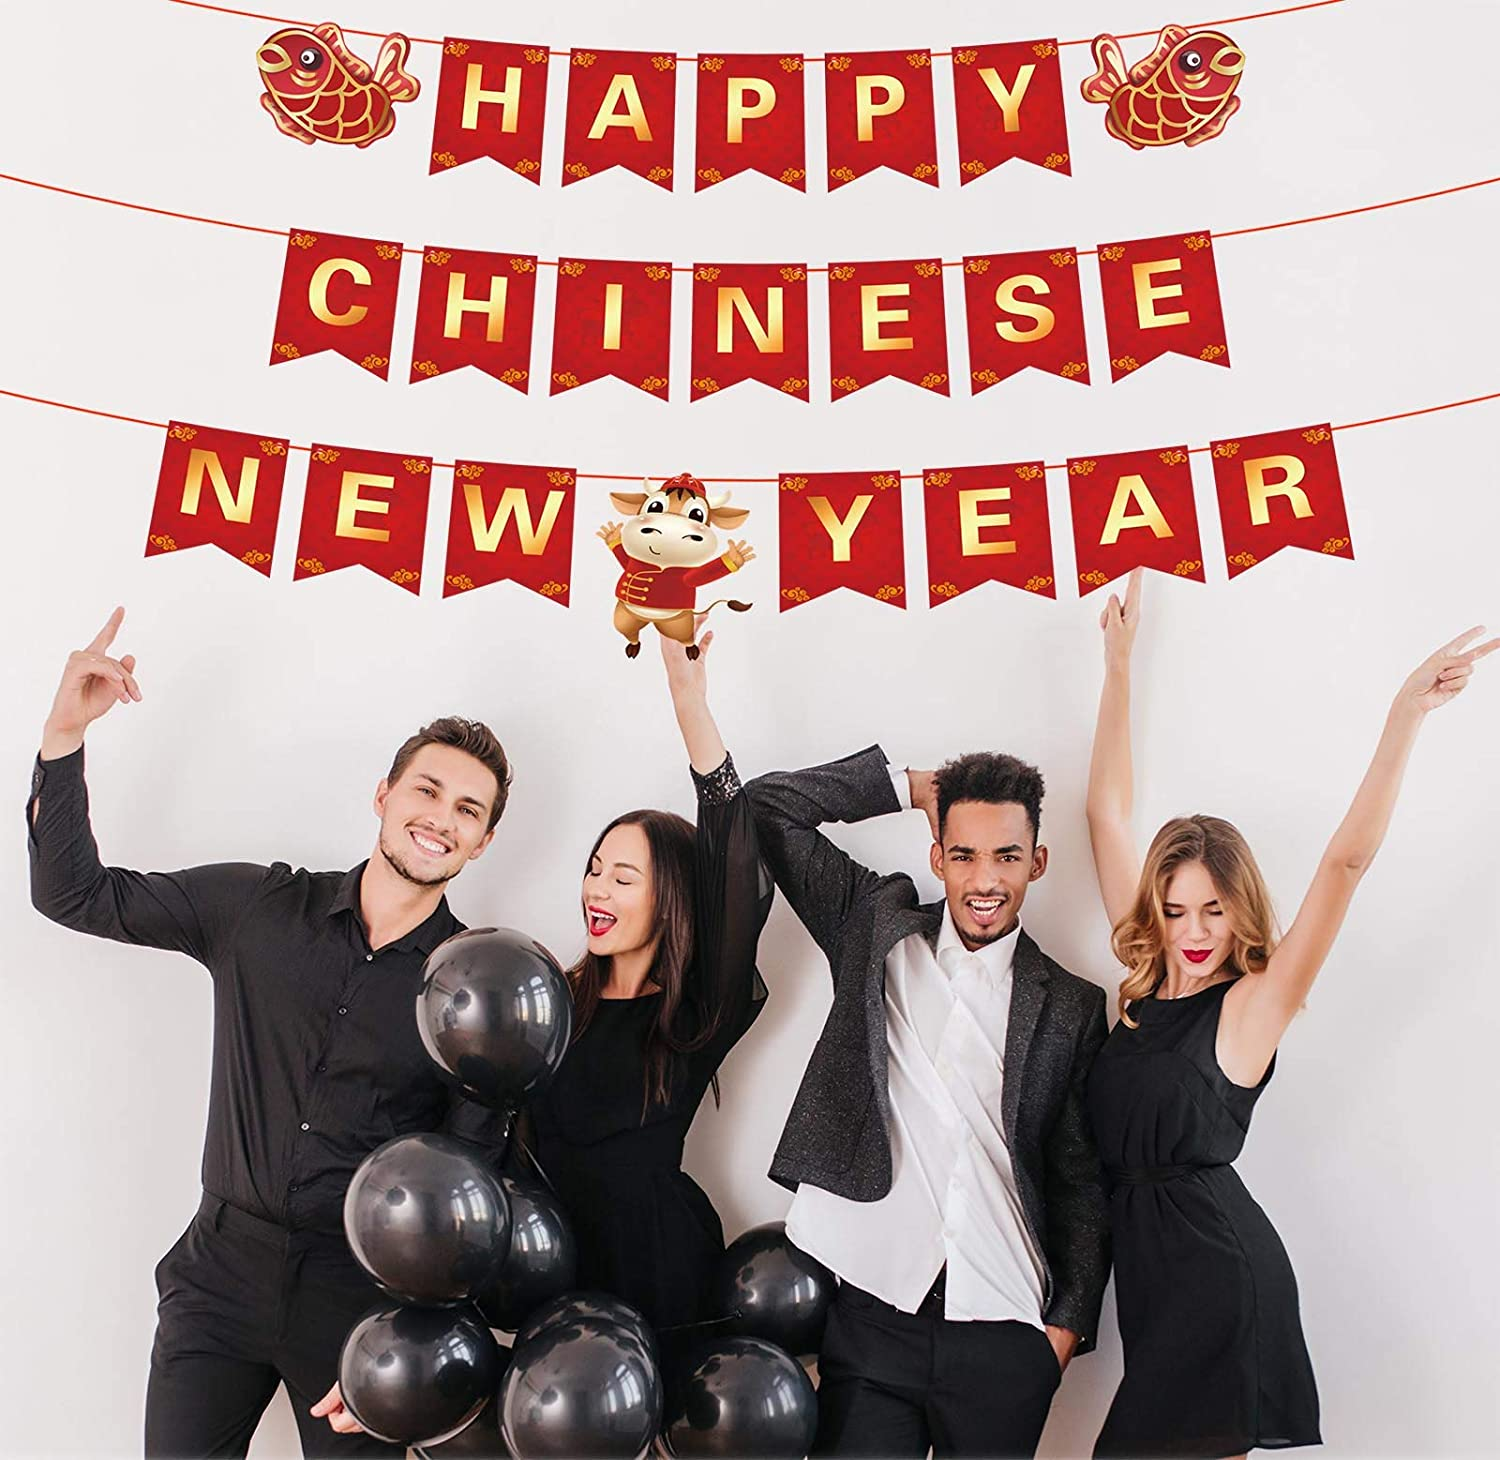 Happy Chinese New Year Banner 2021 New Year Theme Party Decor Picks for Year of The Oxin Decorations Supplies